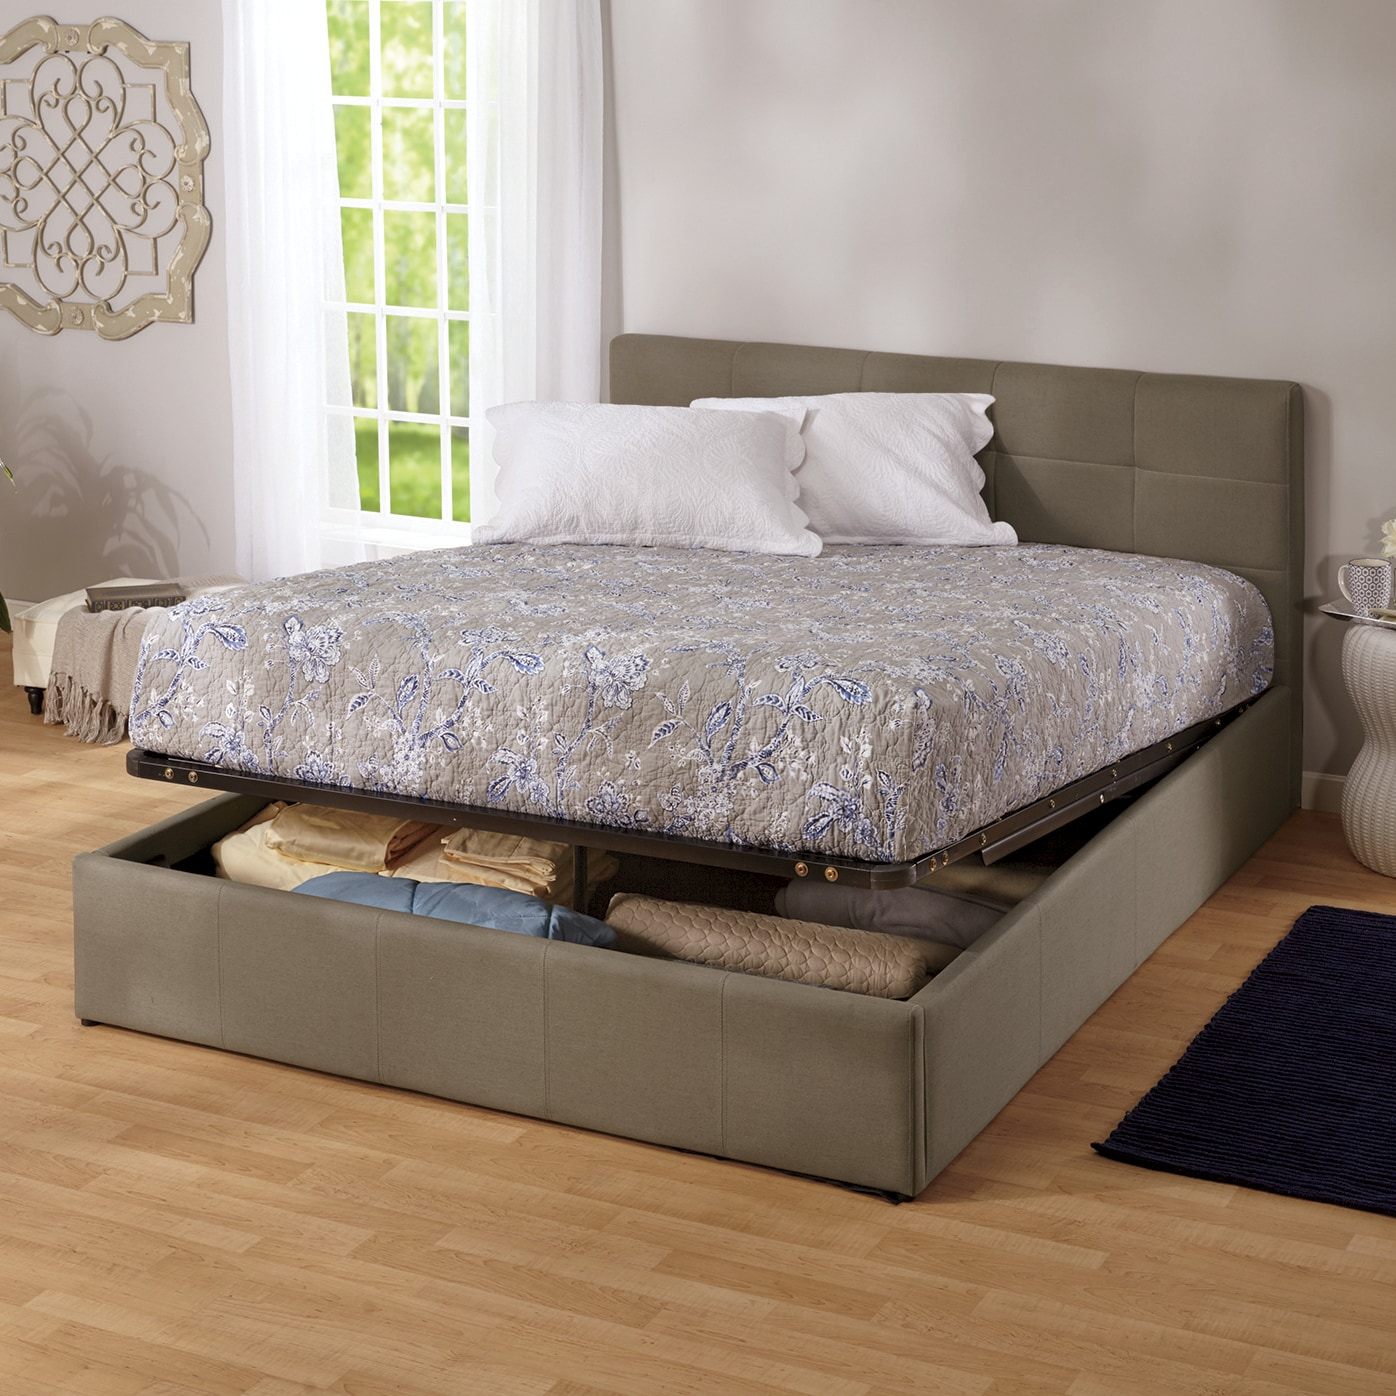 Lift Storage Bed Easy Lift Queen Storage Bed Ginny 39s